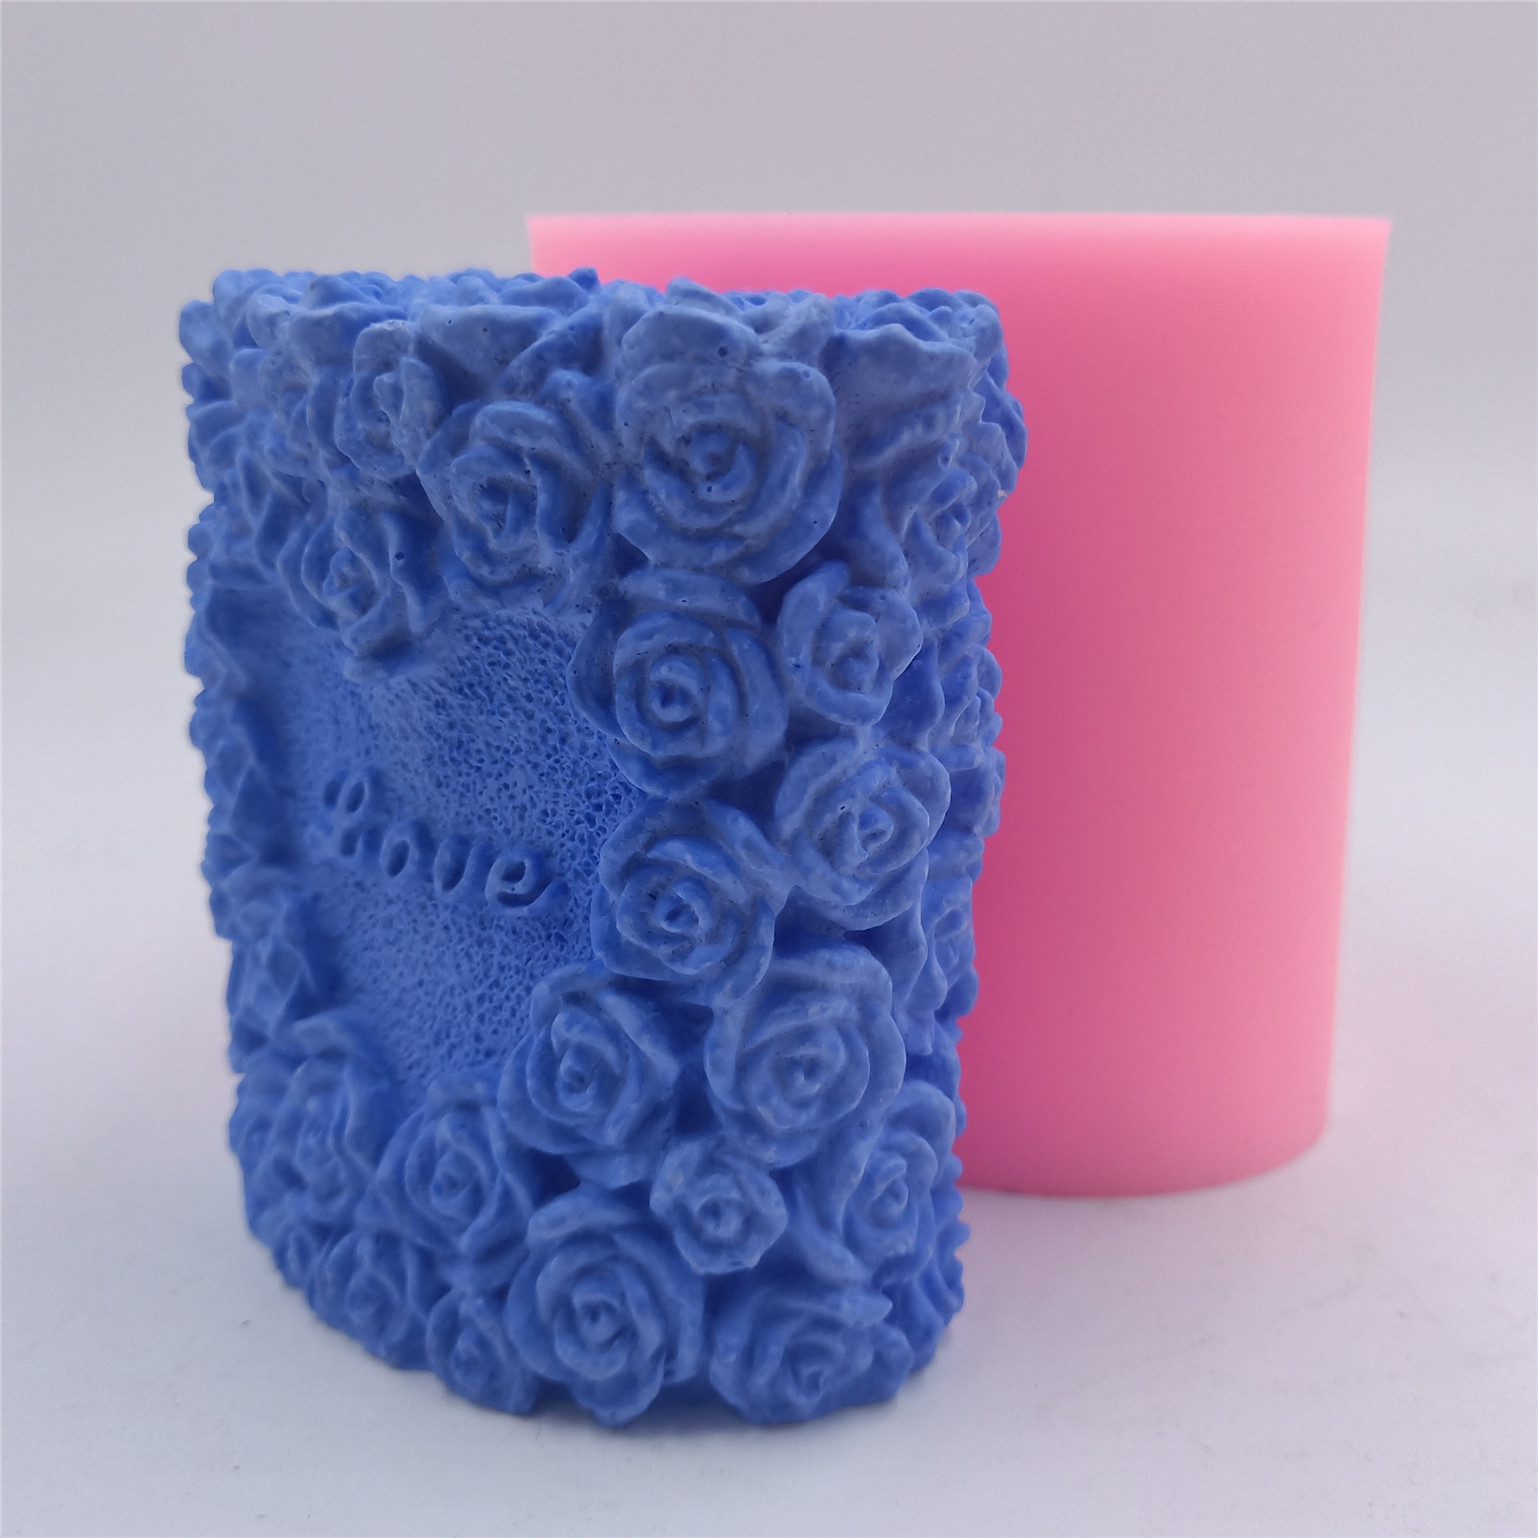 Rubber Butterfly Design Candle Mold Mould for Candle Making Craft Supplies